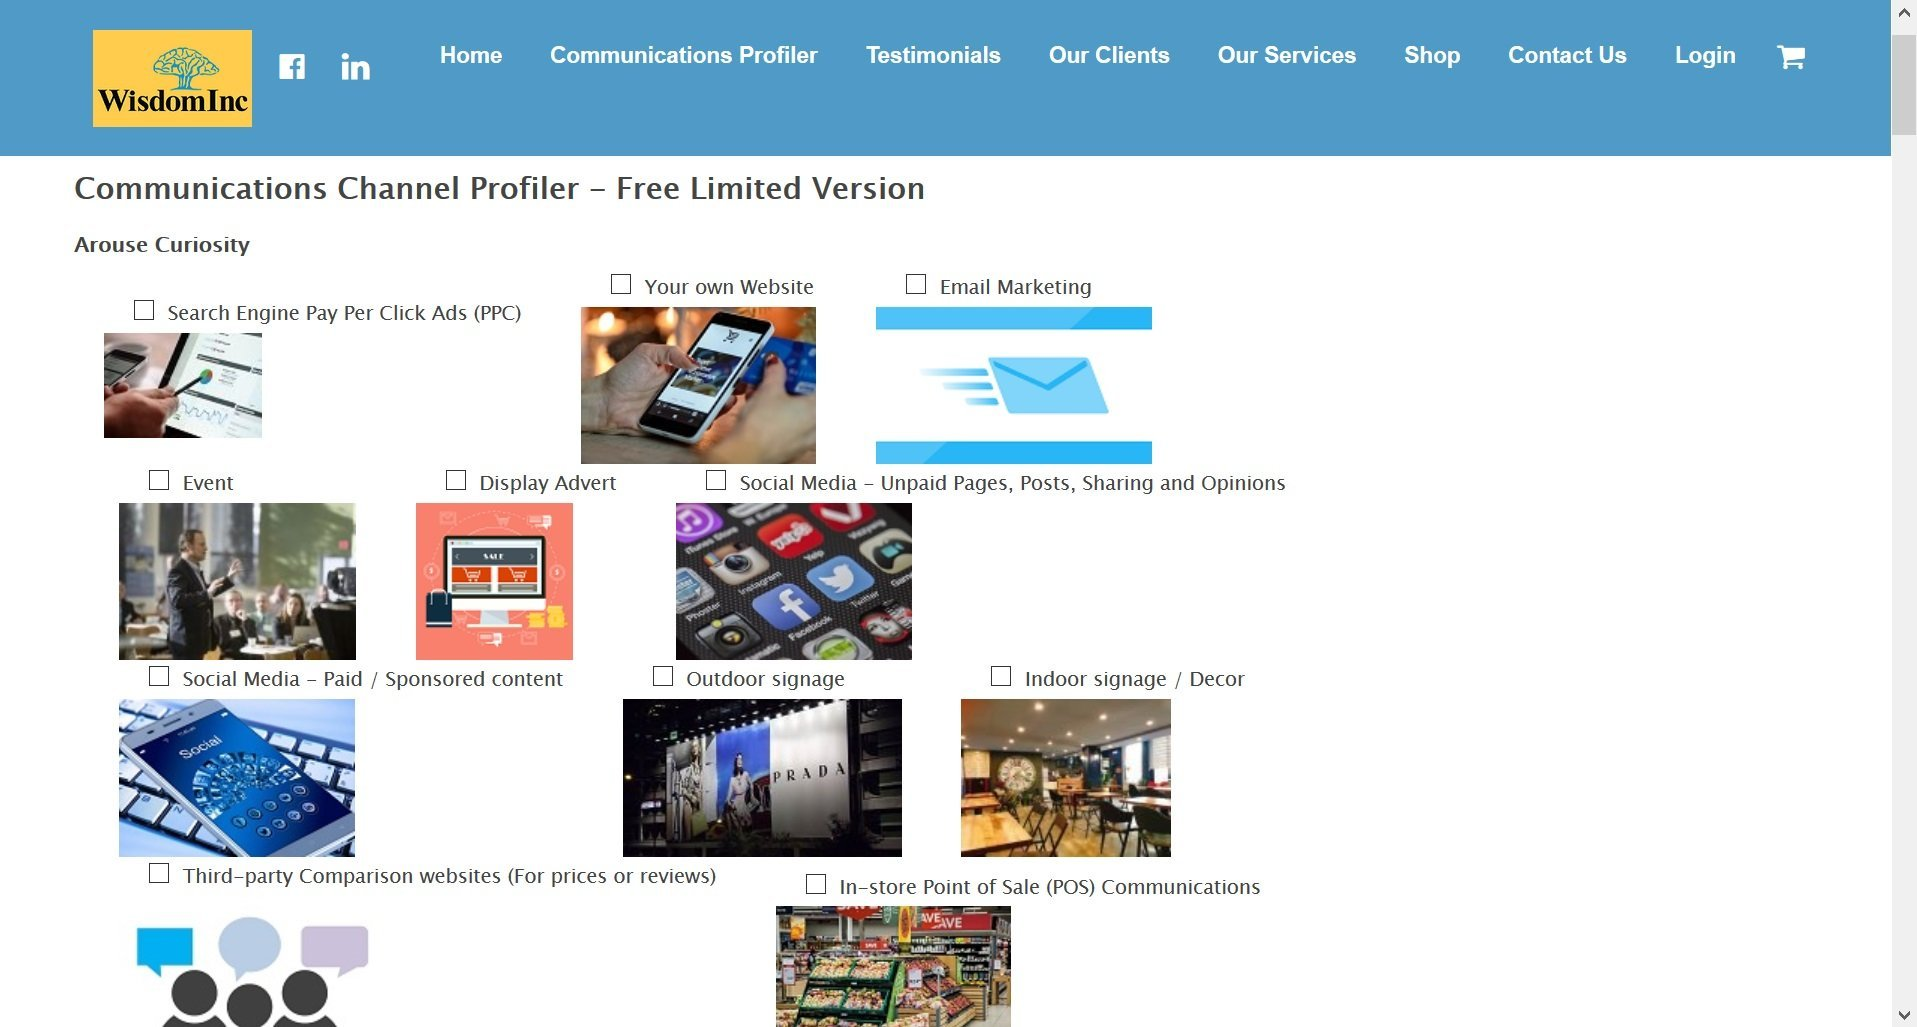 communications-channel-profiler-free-limited-version-1